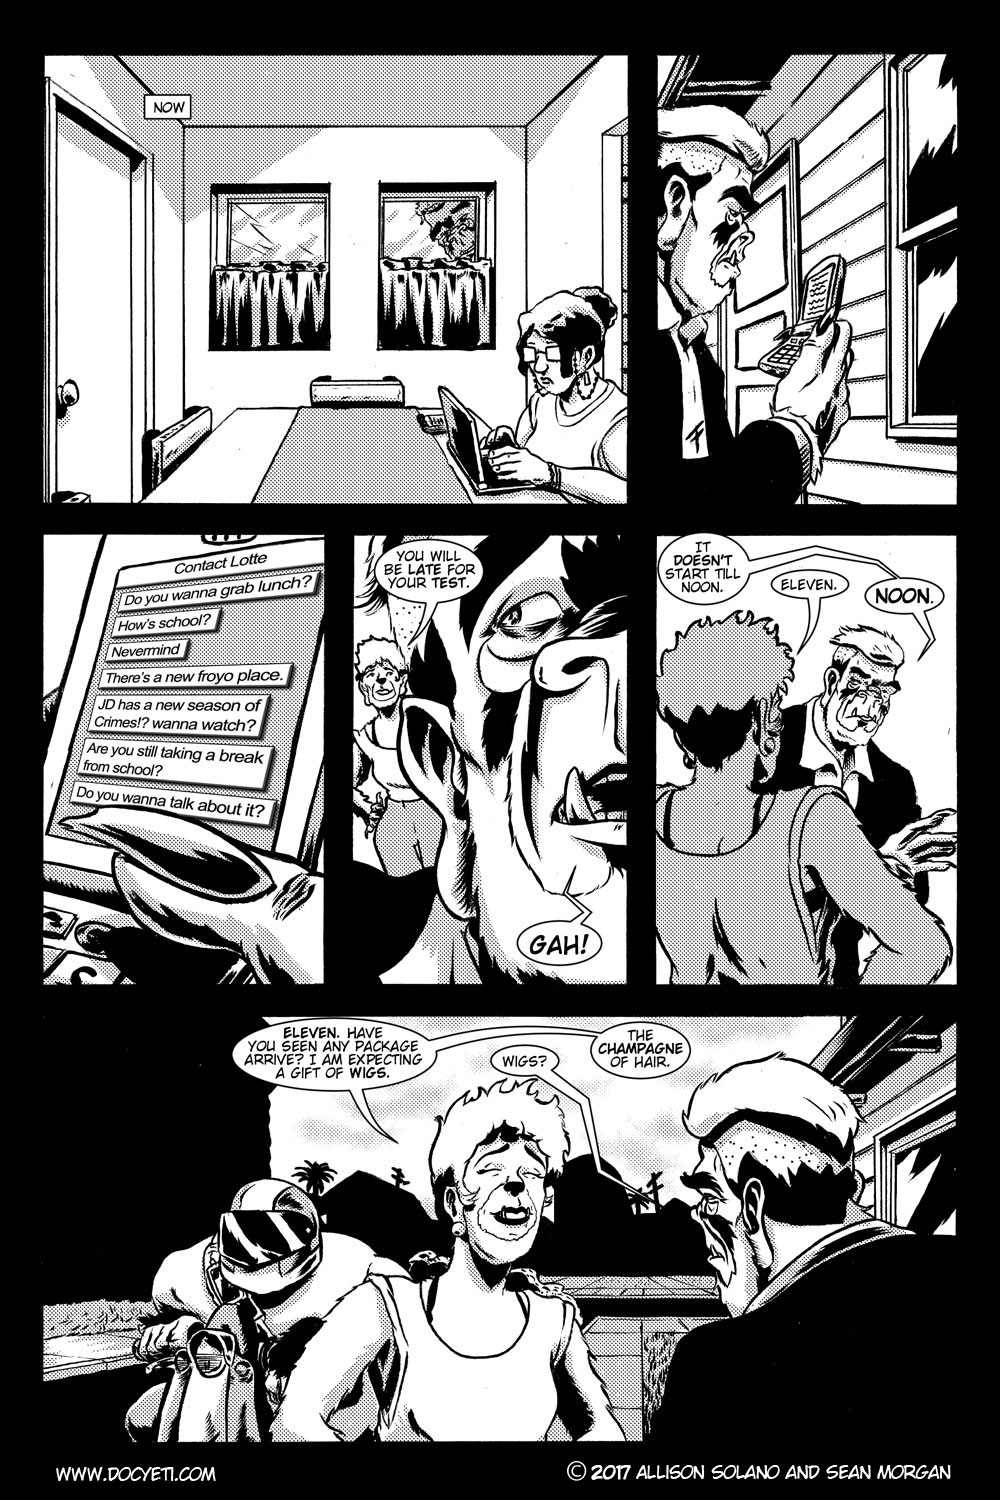 Studying Kills! Issue 1 Pg.2